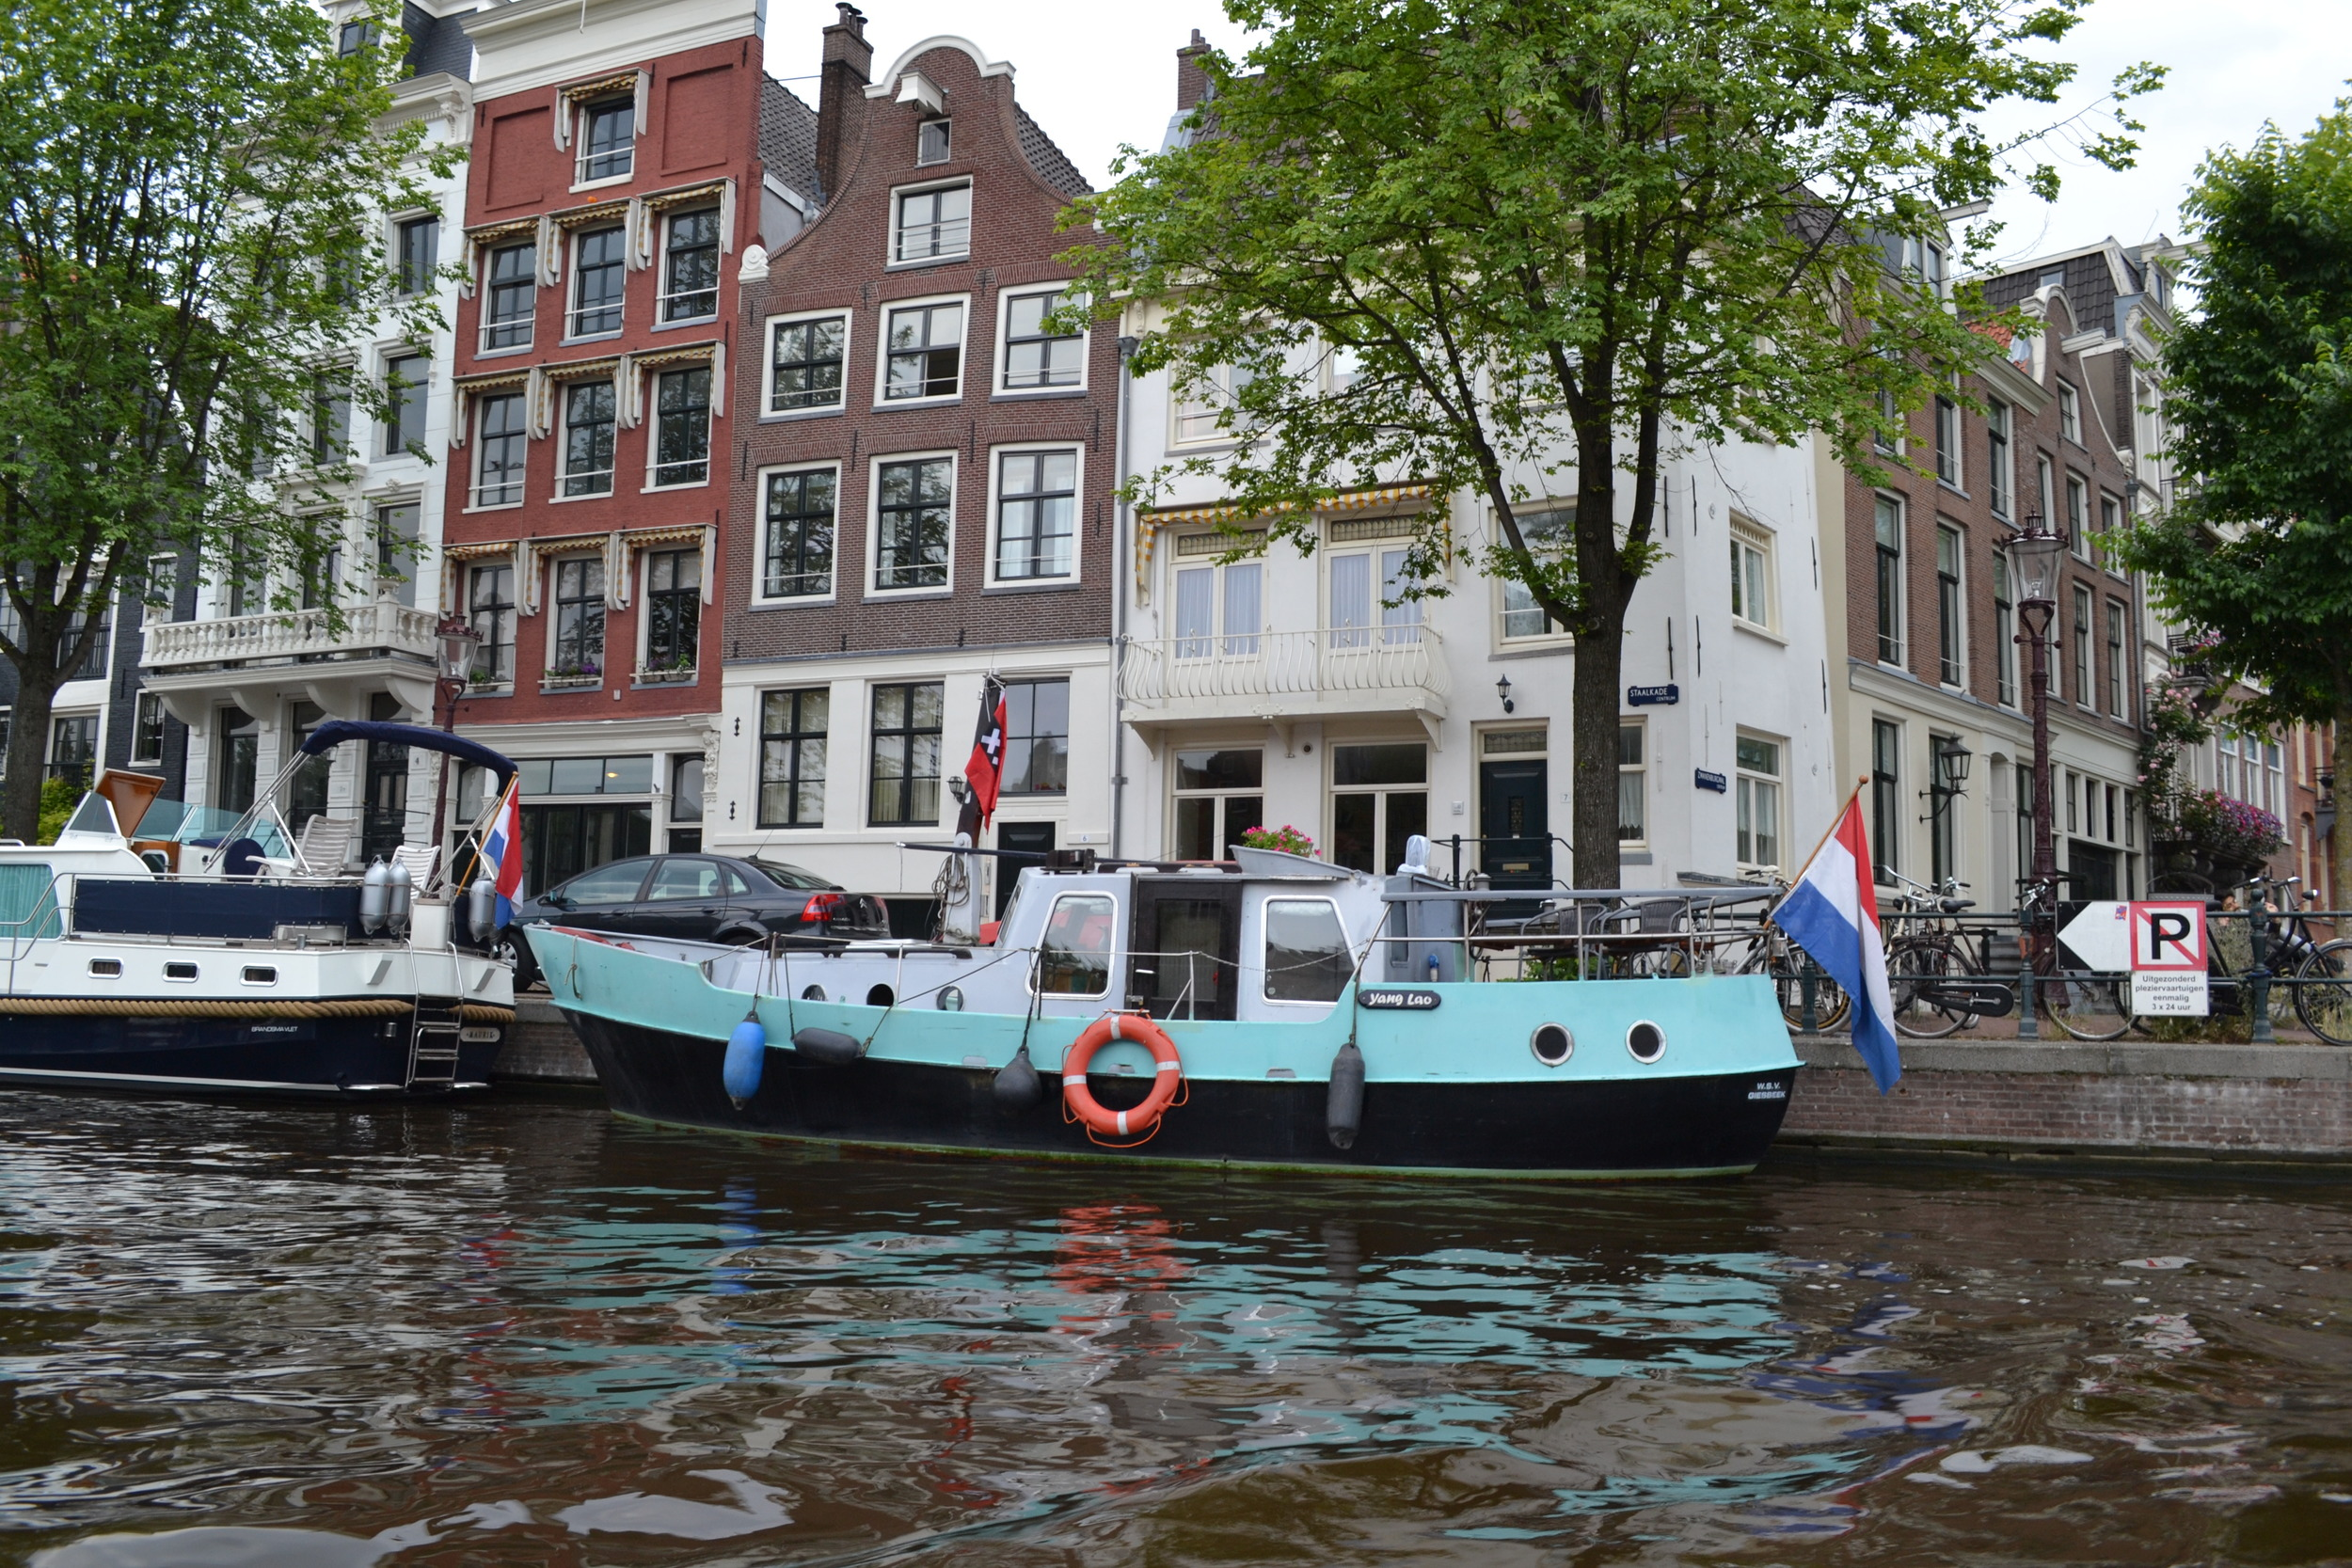 Cruising on the canals